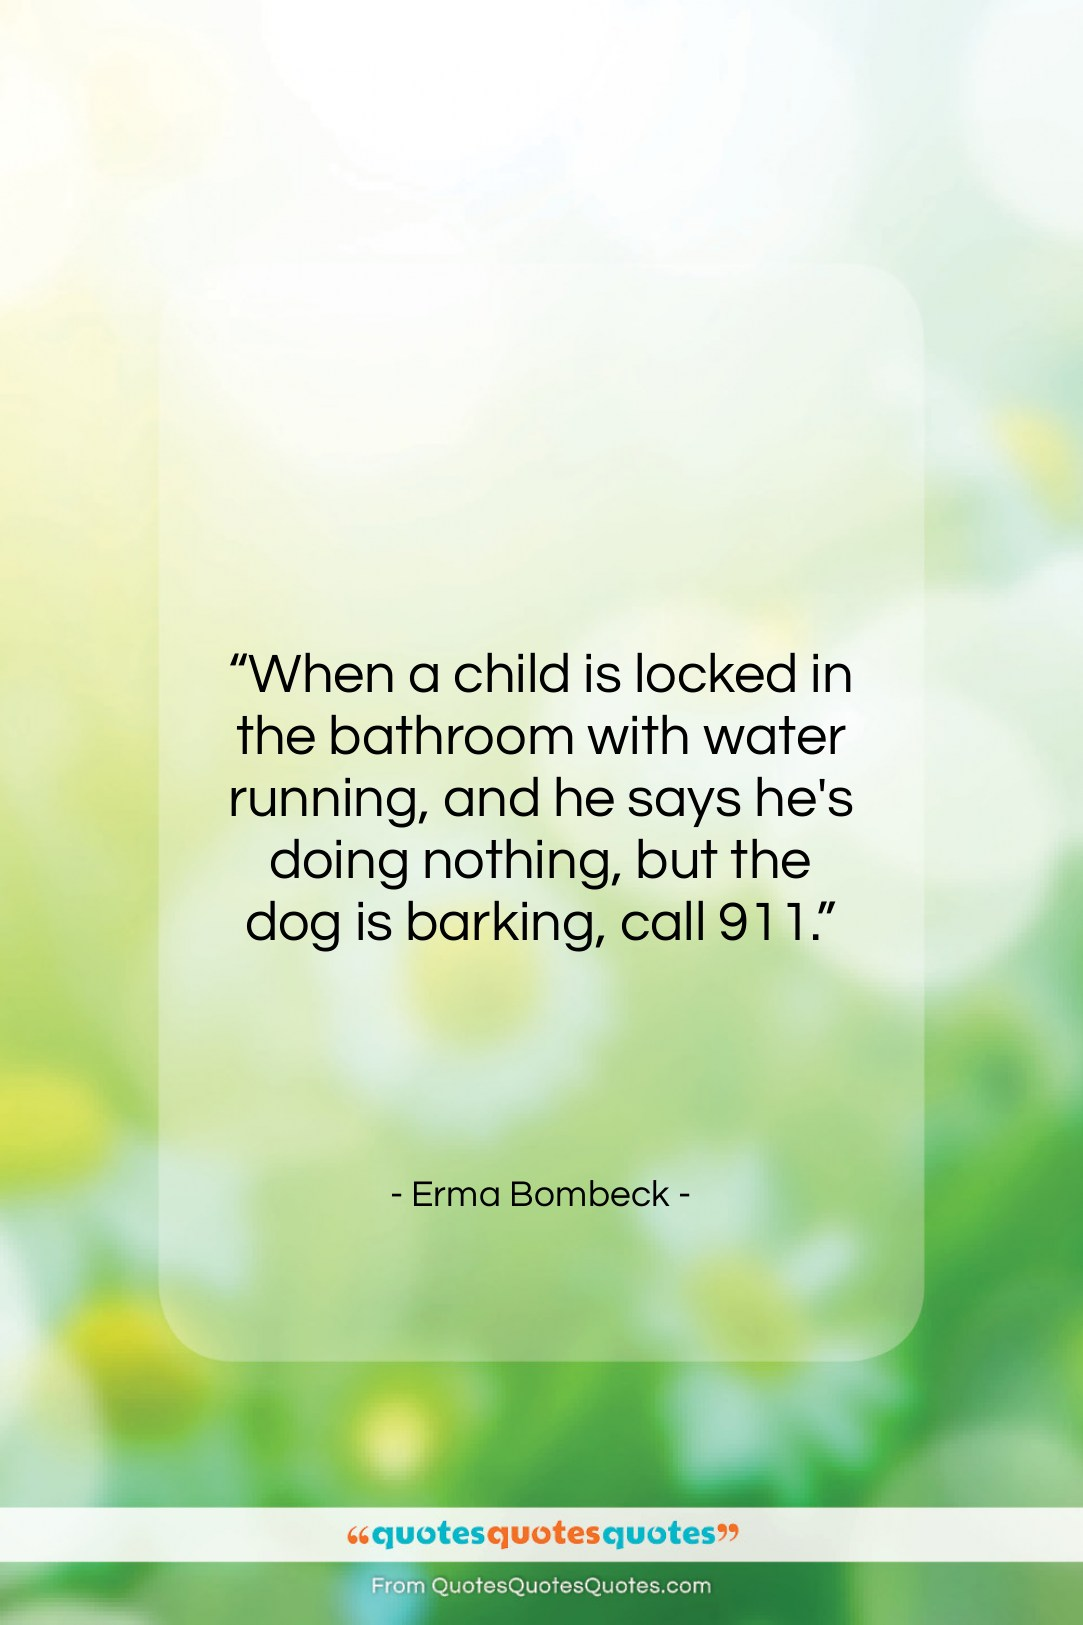 """Erma Bombeck quote: """"When a child is locked in the bathroom…""""- at QuotesQuotesQuotes.com"""